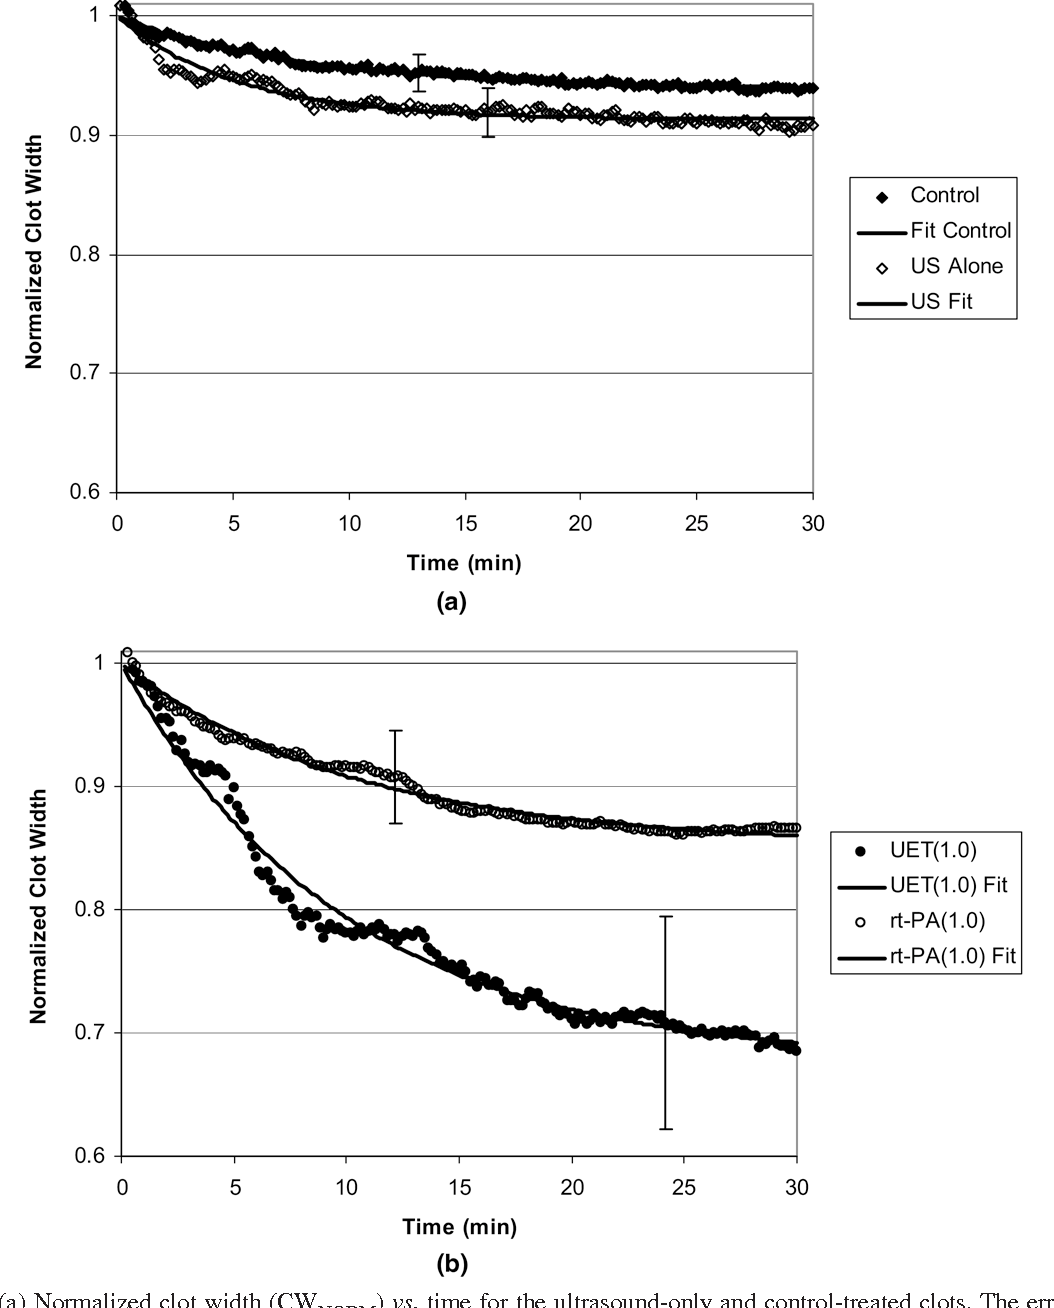 Fig. 2. (a) Normalized clot width (CWNORM) vs. time fo are representative standard deviations for the data. The s (b) Normalized clot width (CWNORM) vs. time for clots the lines are fits to eqn (5), and the description is good. UET treatment com